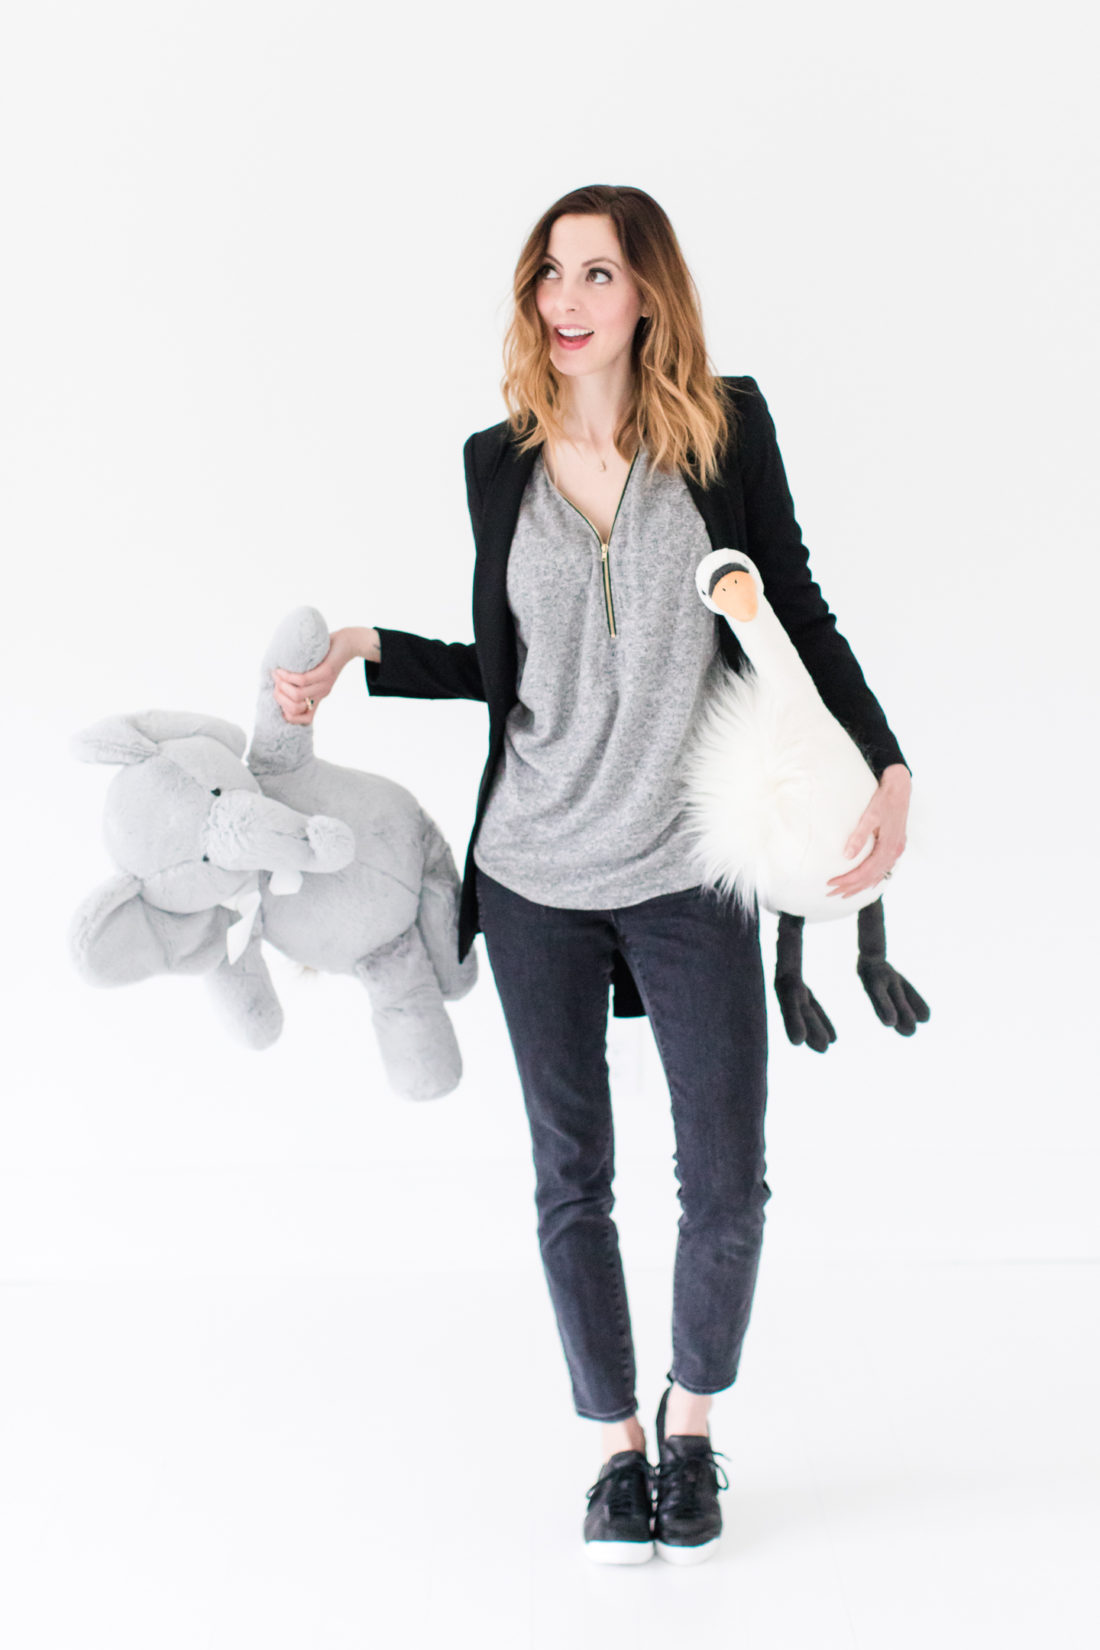 Eva Amurri Martino wears black jeans, a grey top, black nike sneakers, and a black fitted blazer as she cleans up toys in her studio